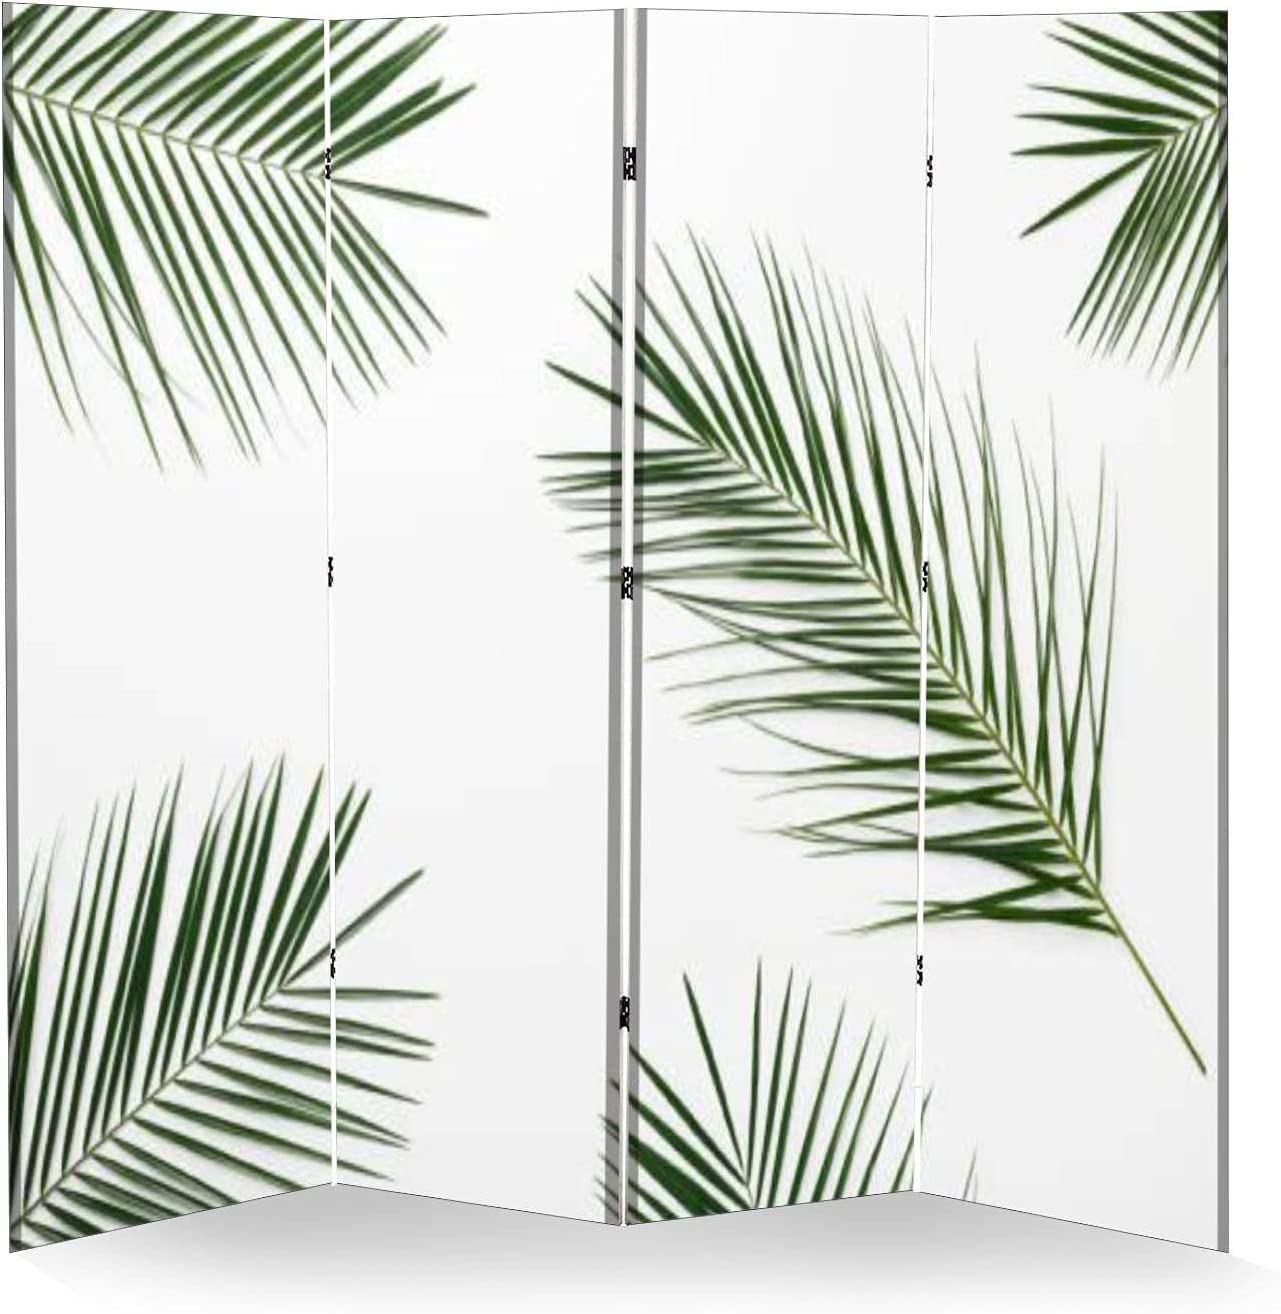 4 Panel Wall Divider Green Leaves Compositio Decorating for Palm Sales Houston Mall